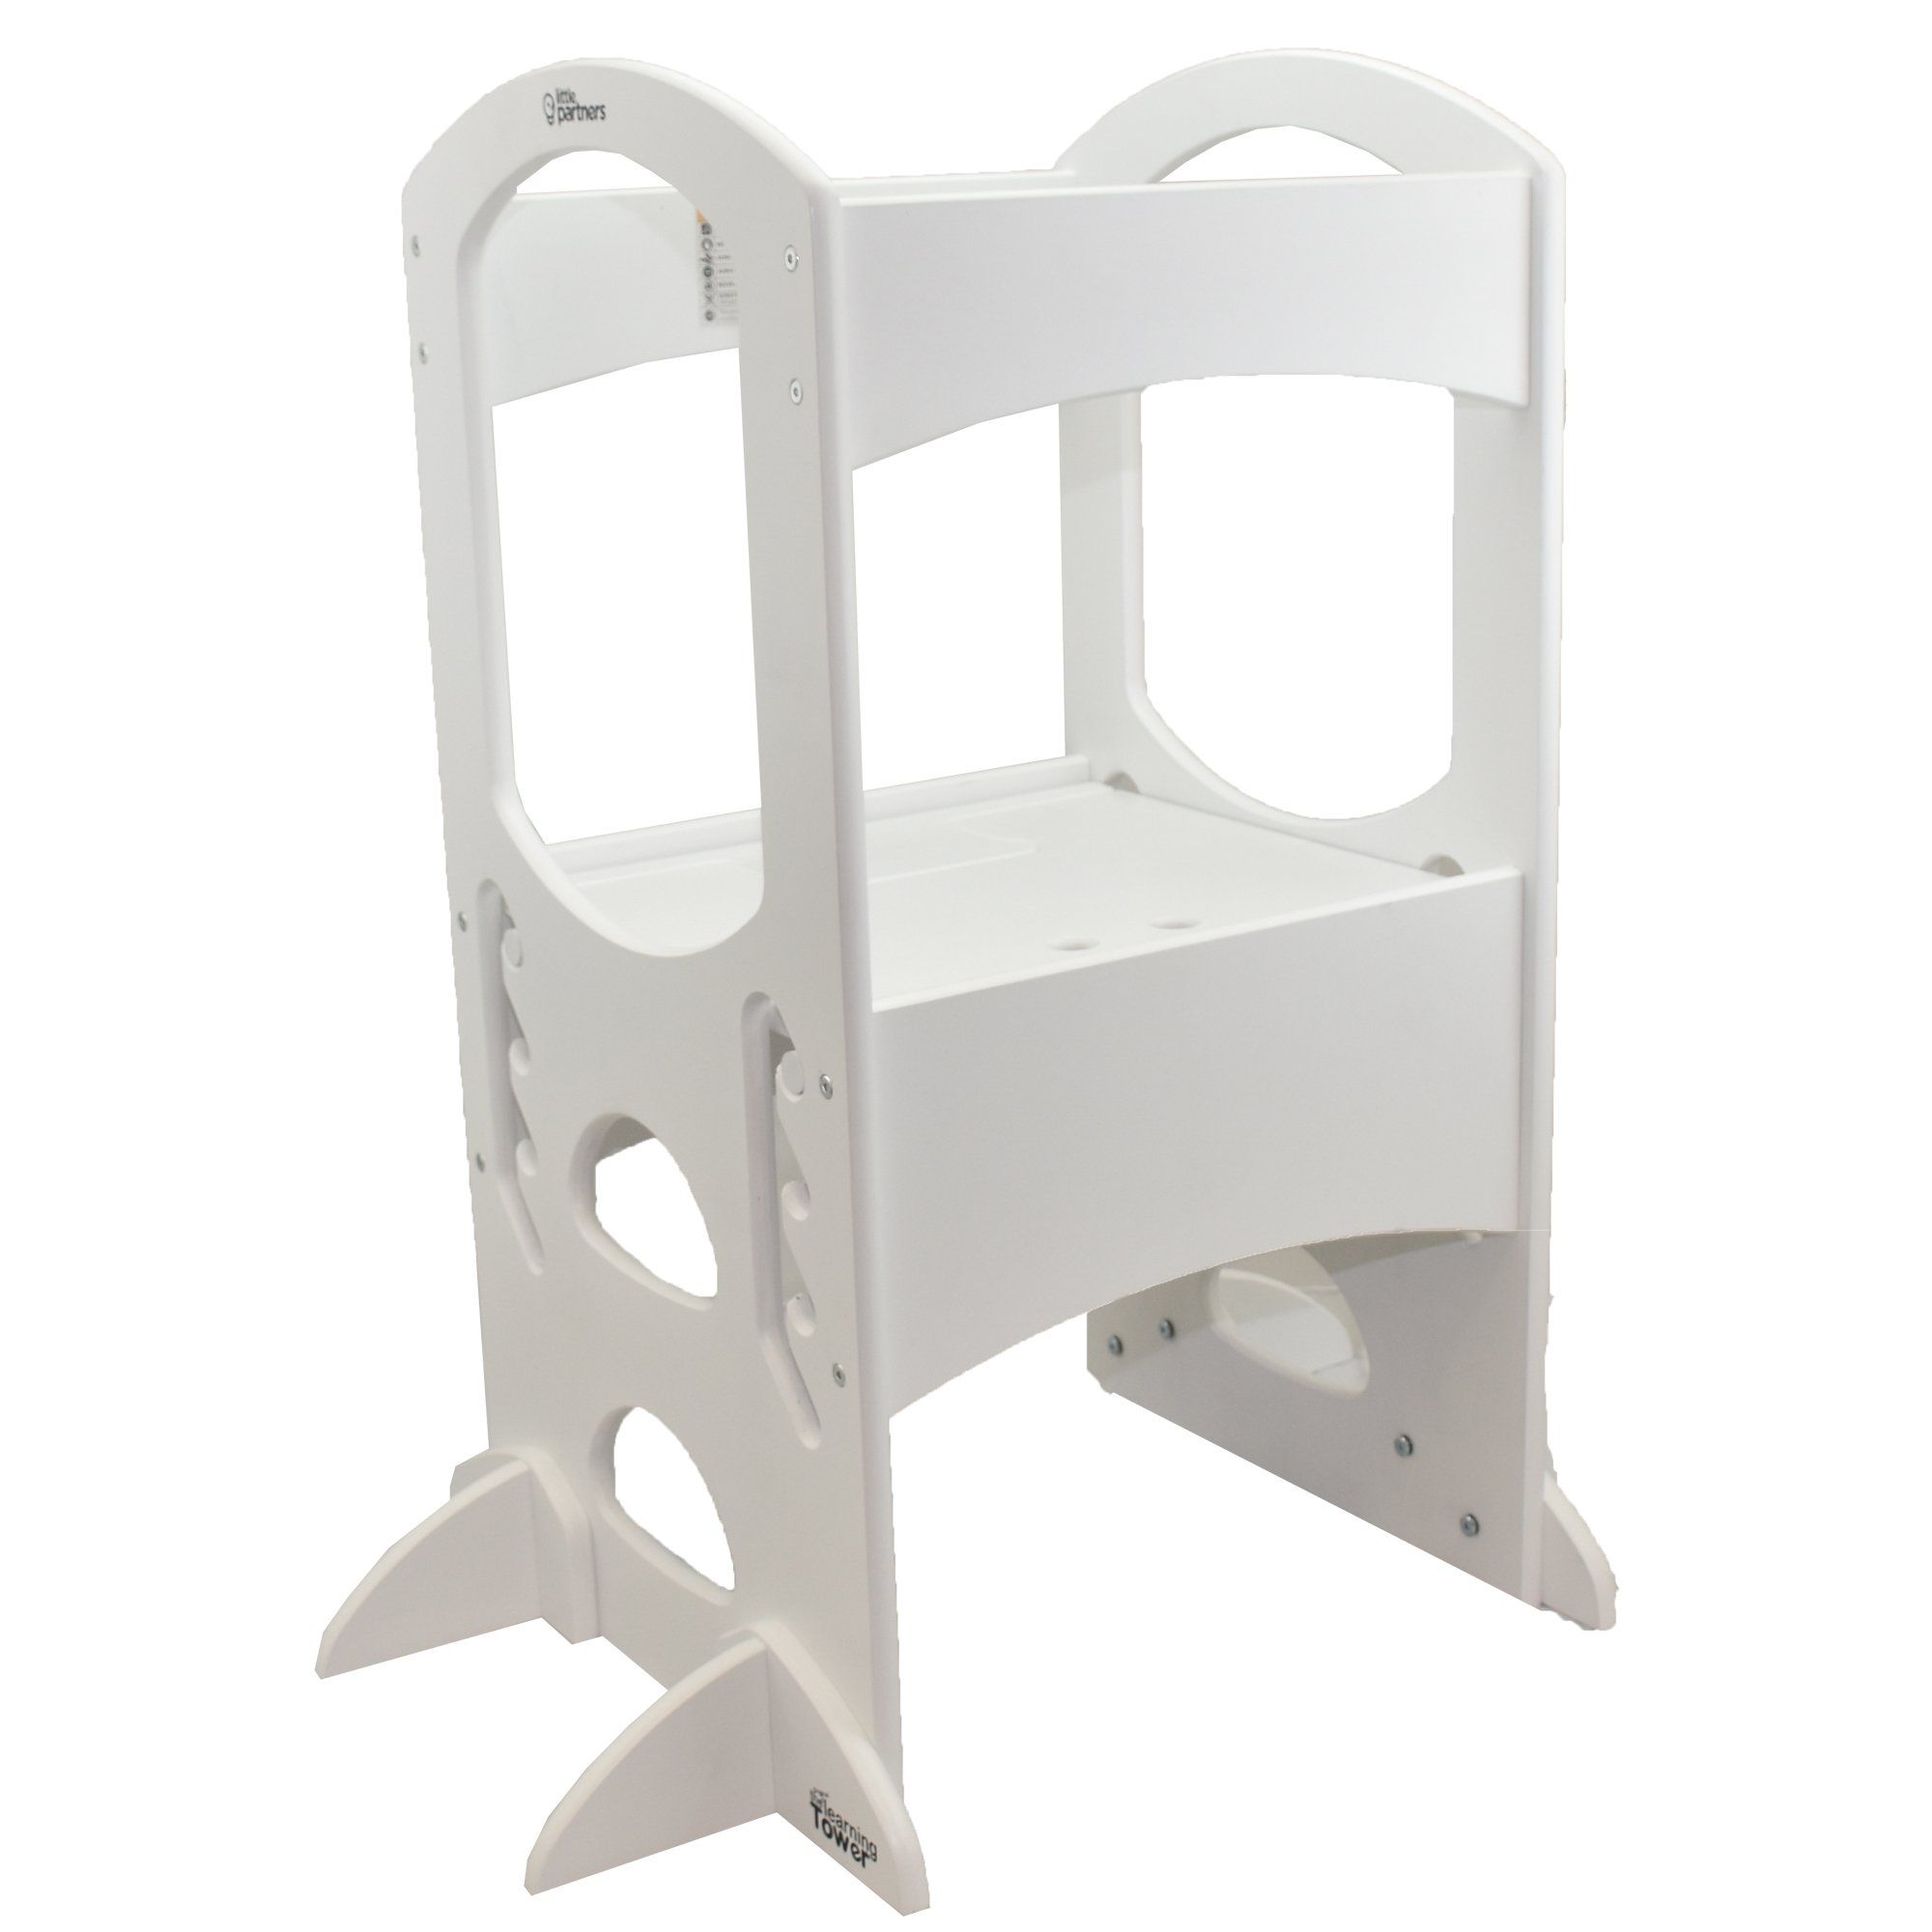 Little Partners' Kids Learning Tower - Child Kitchen Helper Adjustable Height Step Stool, Wooden Frame, Counter Step-Up Active Standing Tower (Soft White) by Little Partners